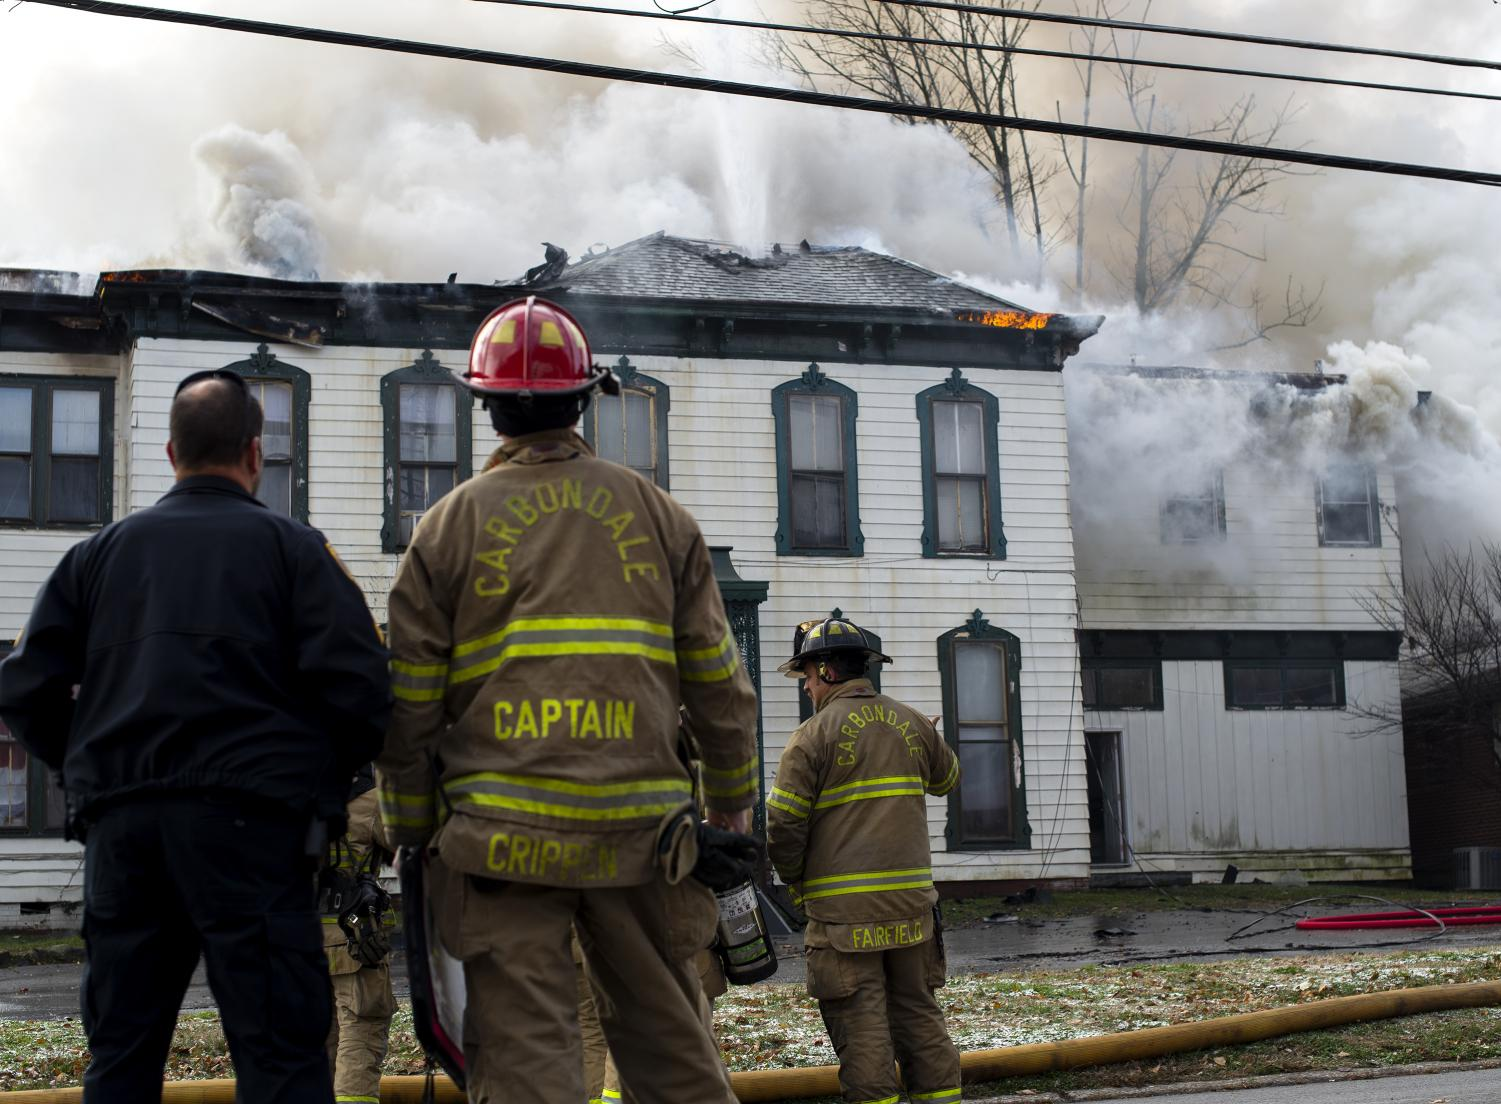 Firefighters put out fire on the corner of Poplar and Route 13, Tuesday, Nov. 13, 2018. The Fire Department has not yet released a statement. The house is regarded as the 'oldest' in Carbondale. (Isabel Miller | @IsabelMillerDE)